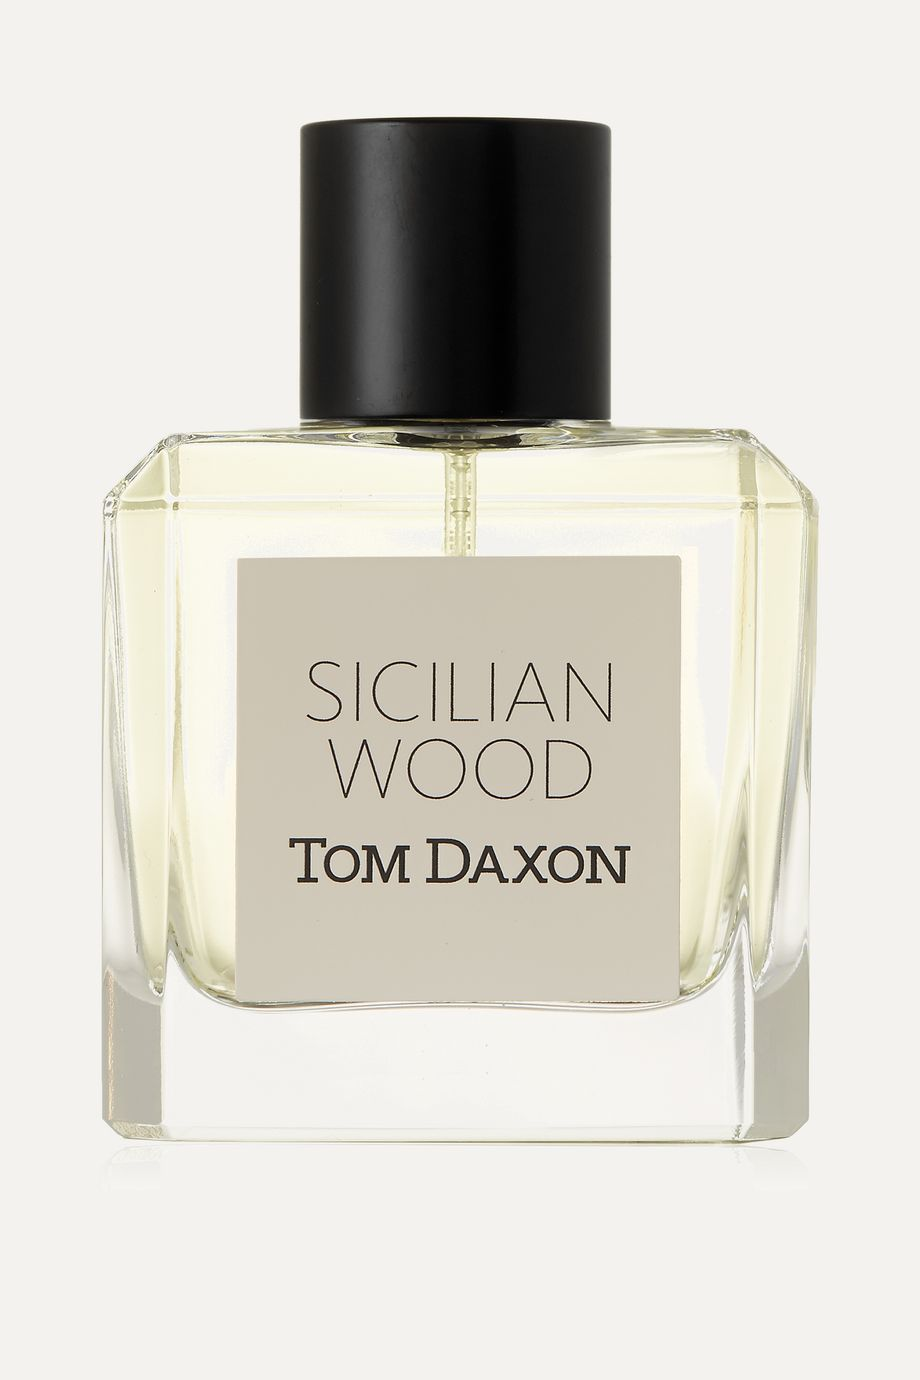 Tom Daxon Eau de Parfum - Sicilian Wood, 50ml